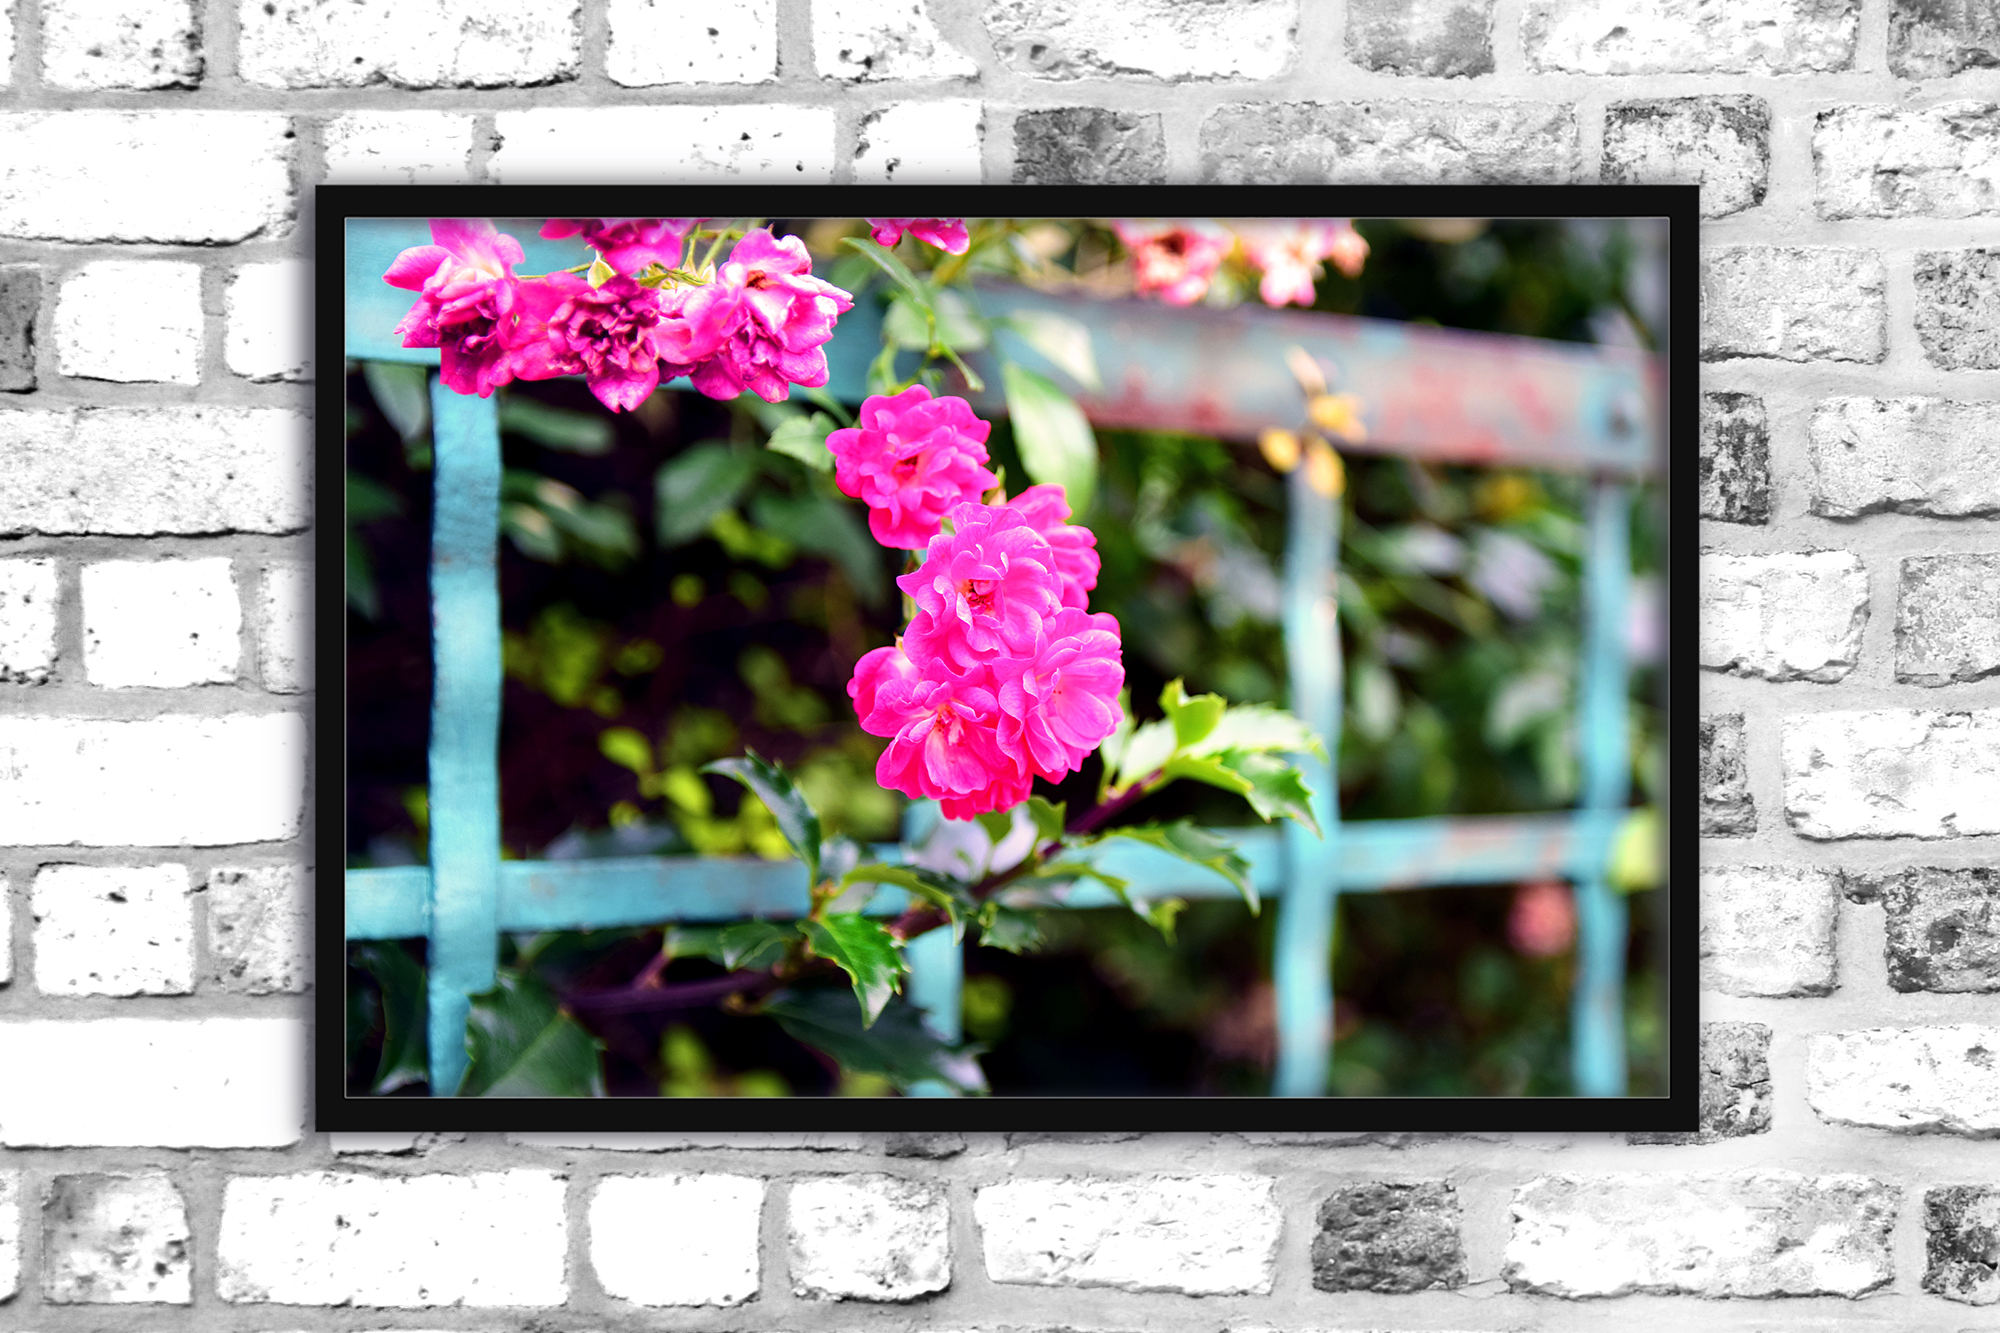 Nature photo, floral photo, flower photo, summer example image 6